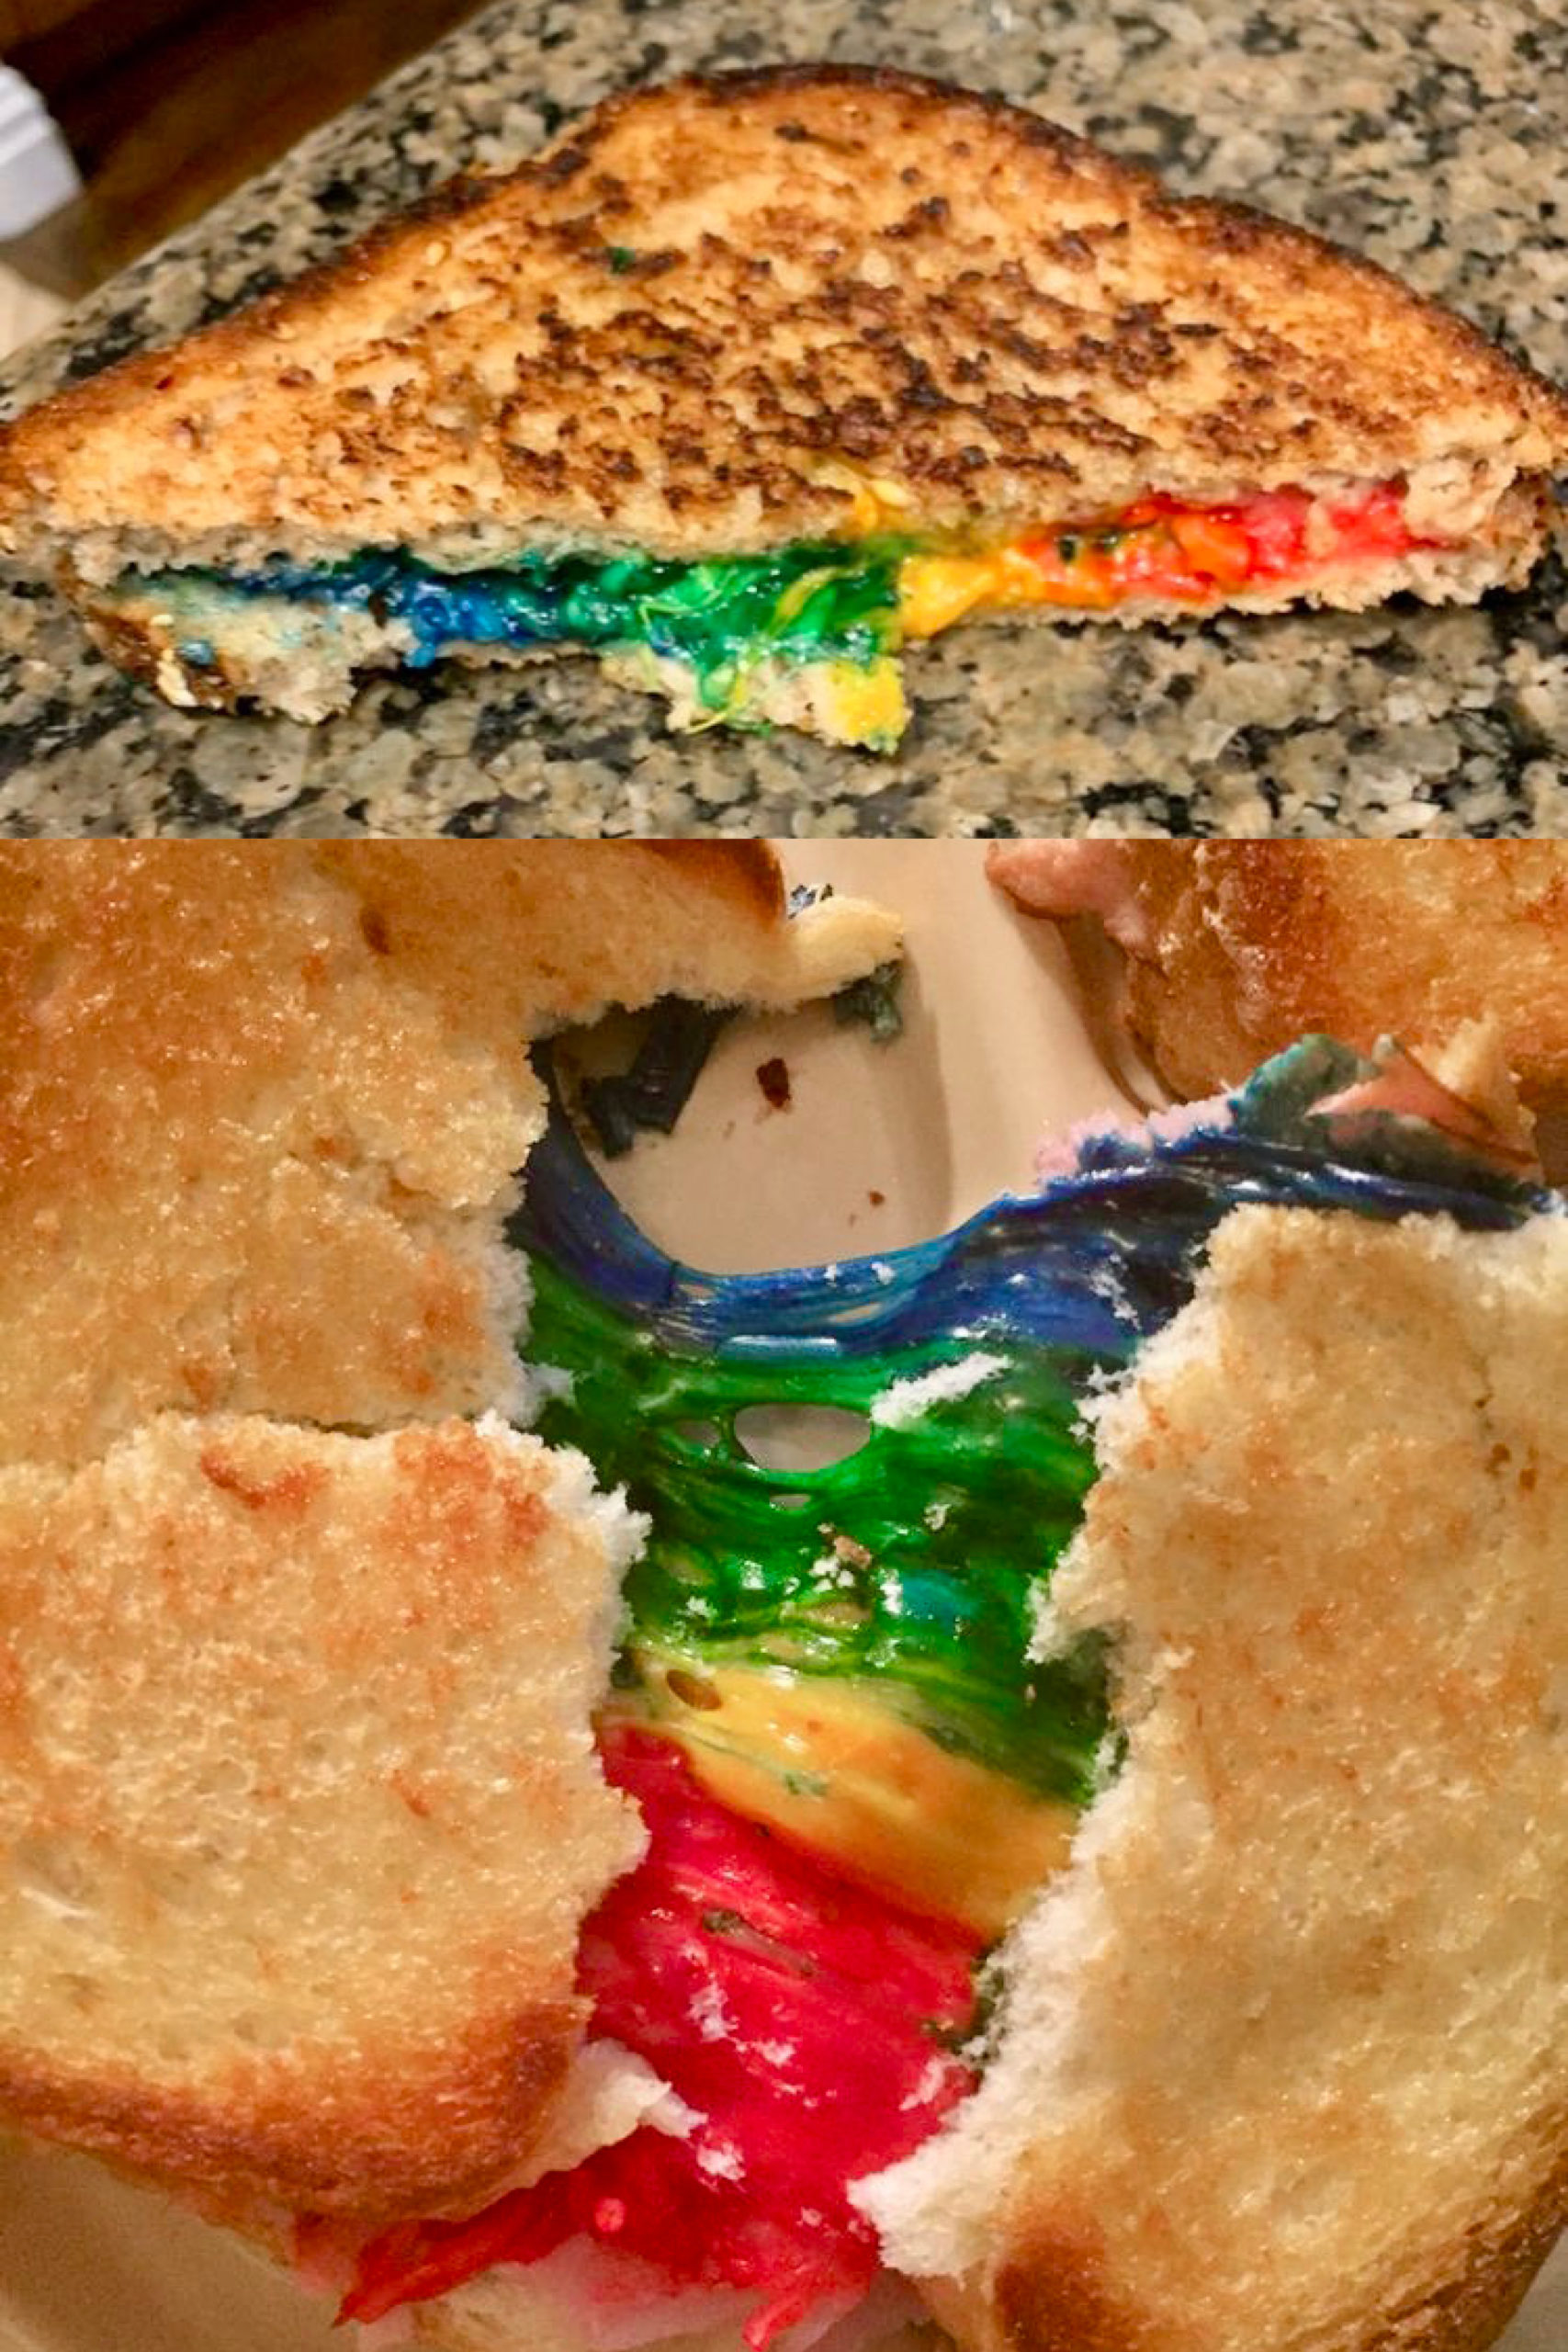 Rainbow Grilled Cheese - Learn to make your dreams come true with this magical, yet easy rainbow grilled cheese recipe.